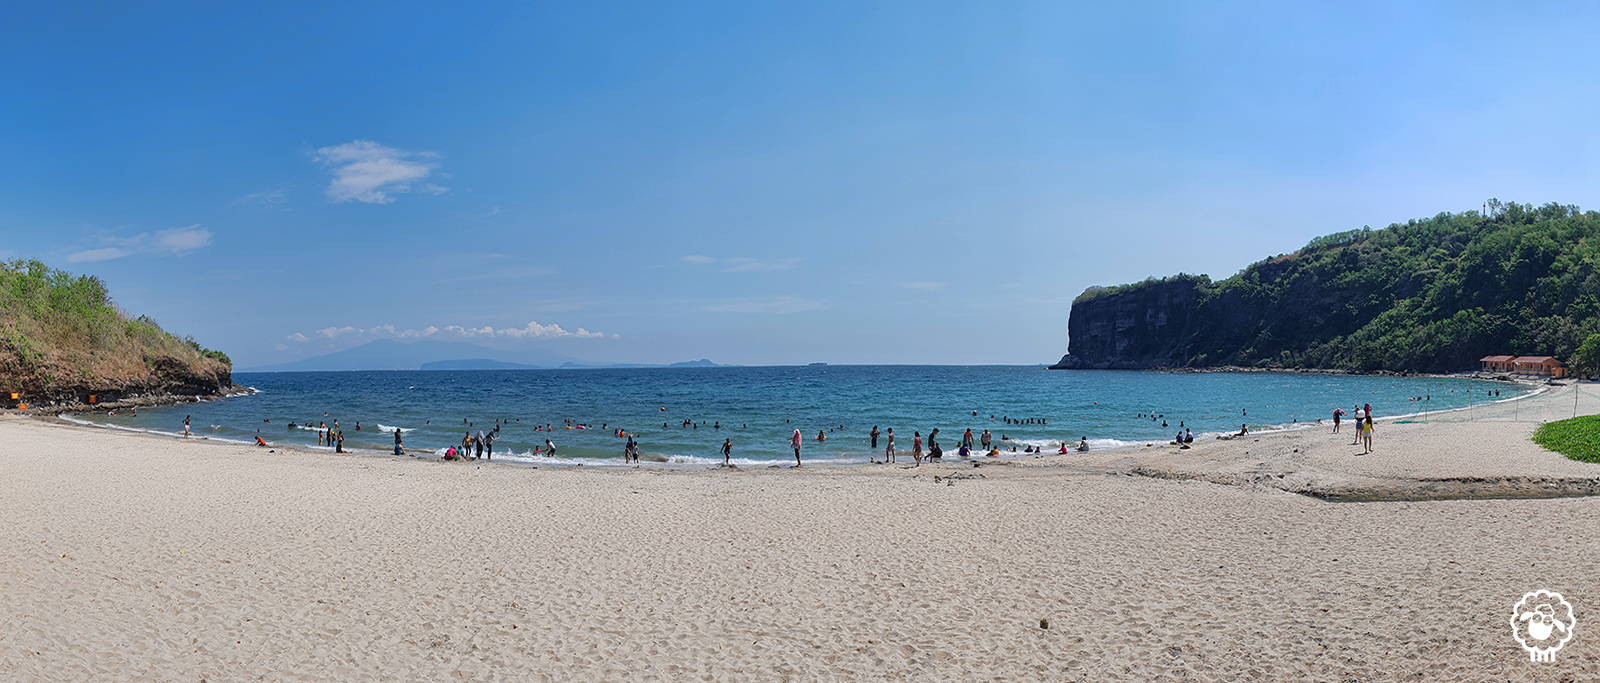 Beach and shores with clear sky and rock mountain formation